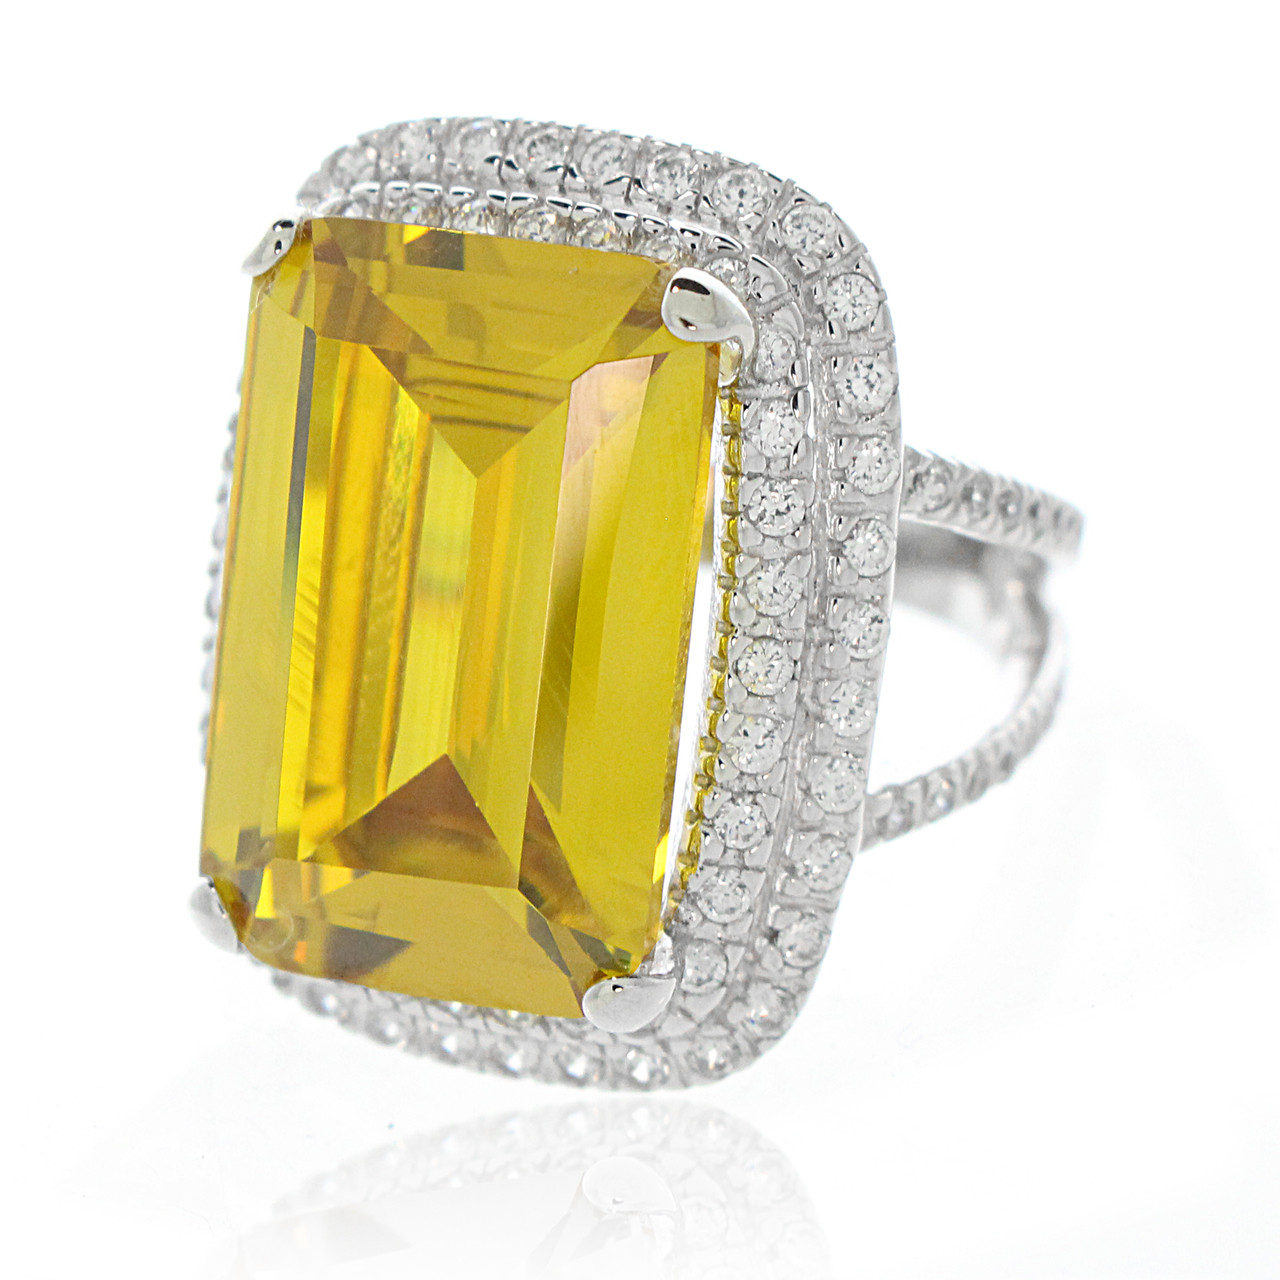 2f5e27f3d8 Statement Canary Yellow CZ Ring - Artune Jewelry Online